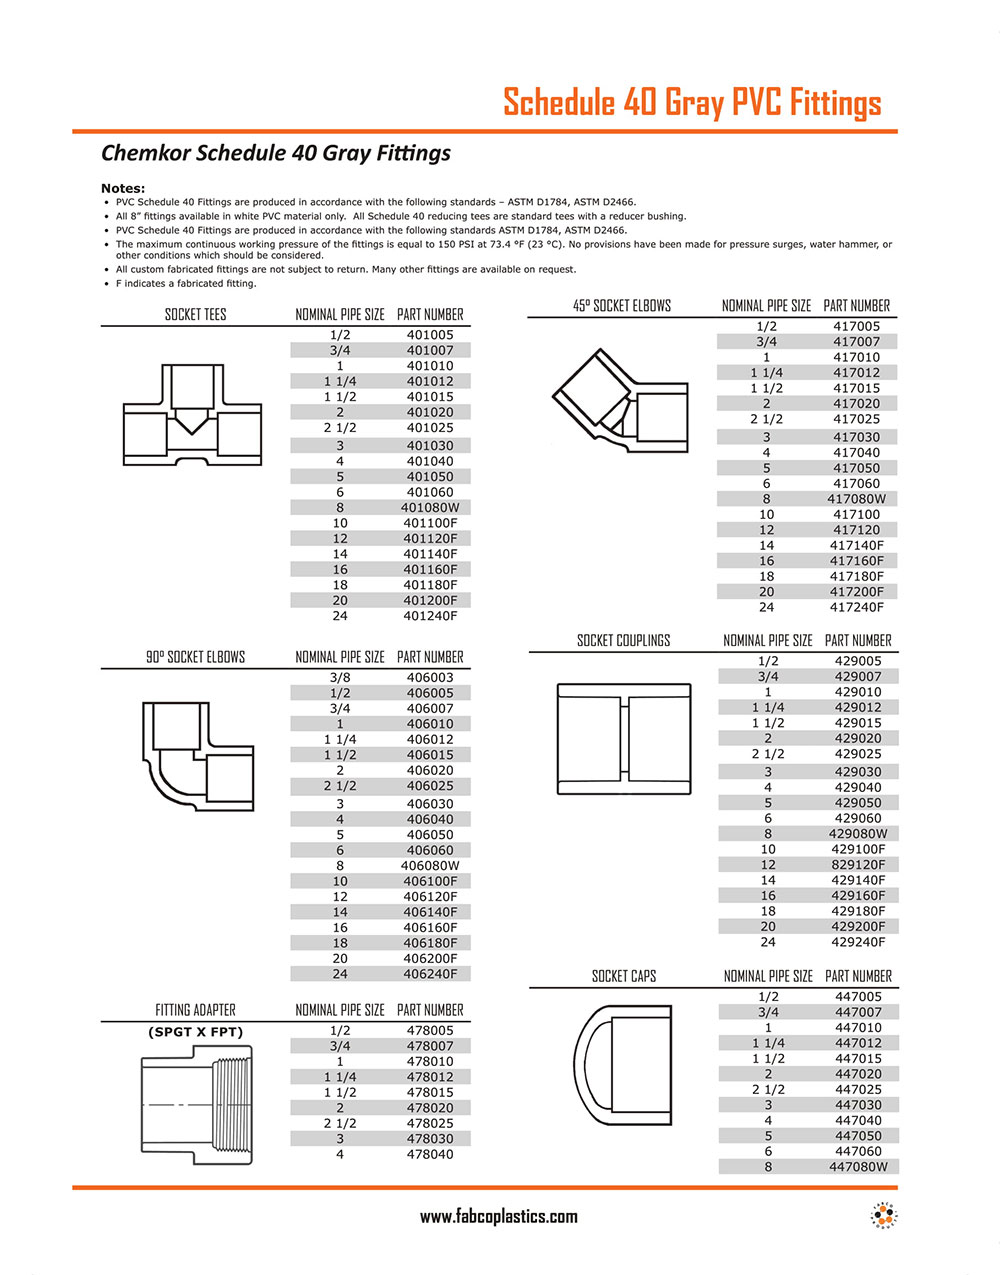 Schedule 40 Grey PVC Fittings